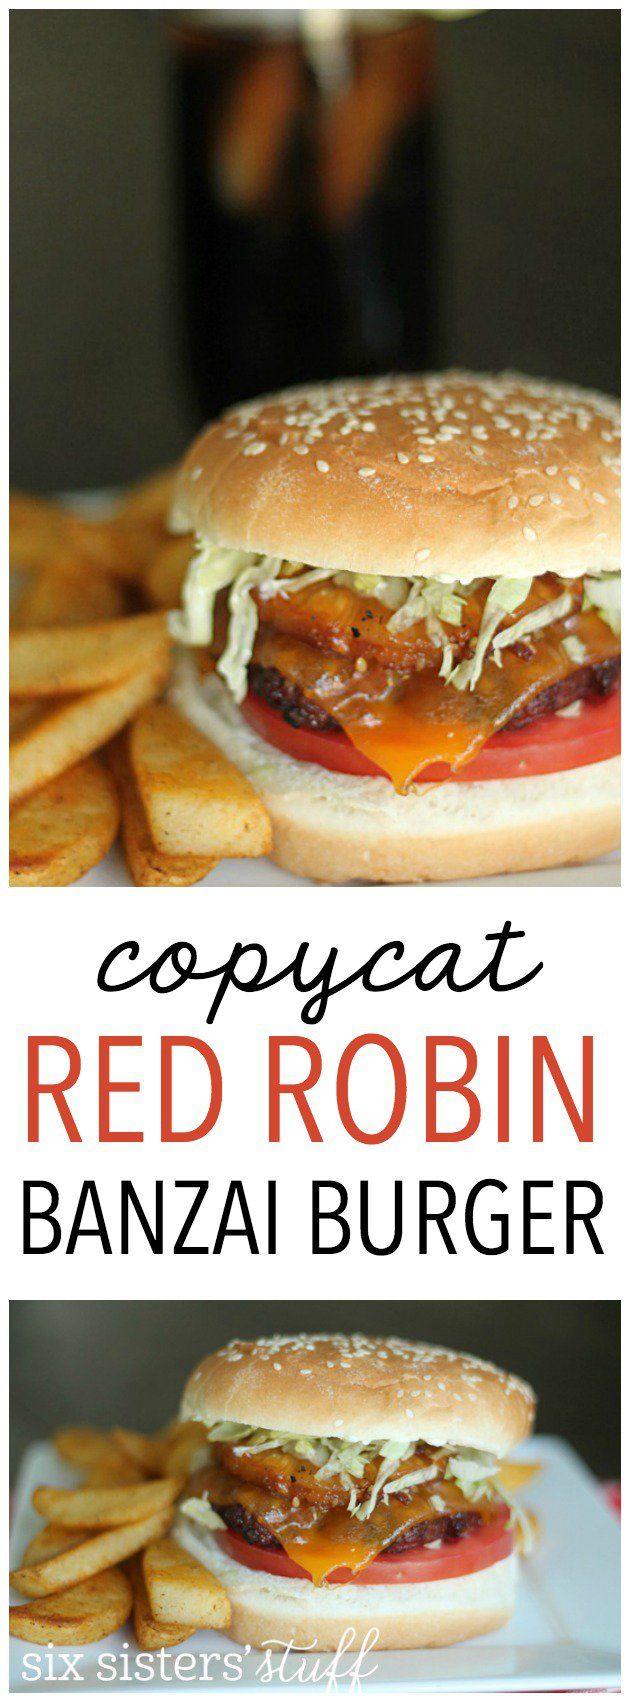 Copycat Red Robin Banzai Burger from SixSistersStuff.com. Tastes just like it came straight from the restaurant! So easy to make and SO DELICIOUS!